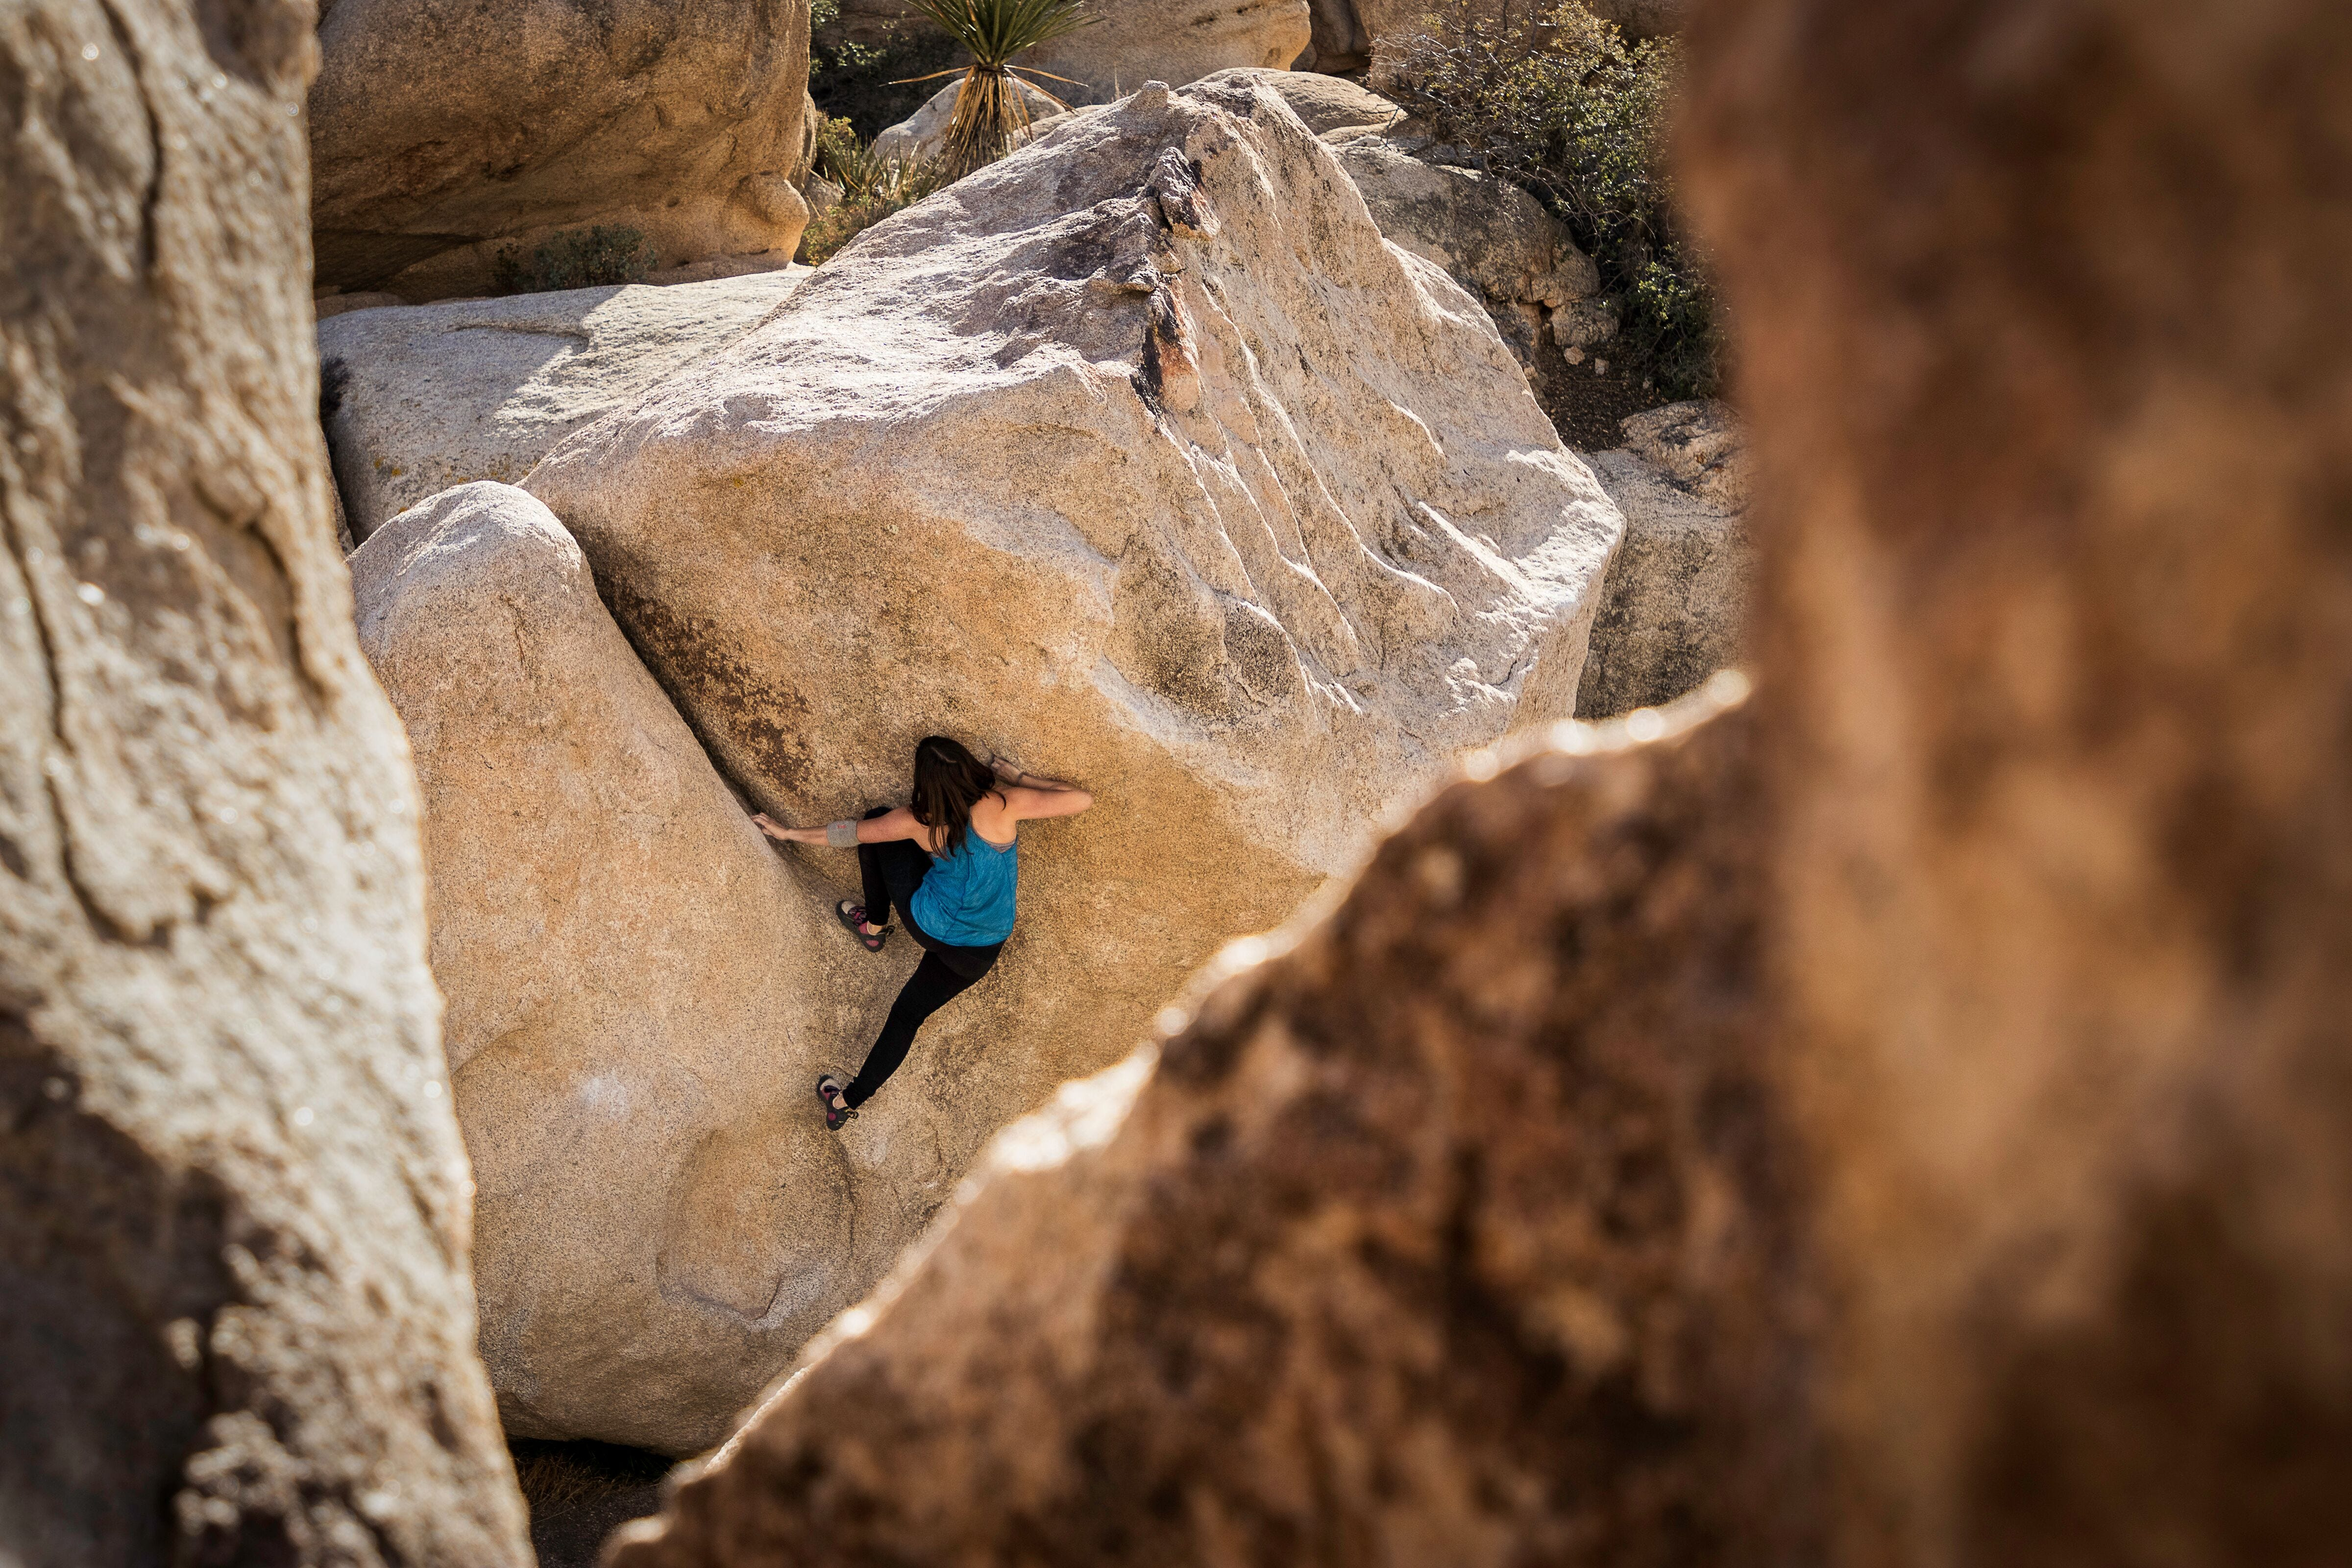 Top Climbing And Bouldering Destinations In California From Joshua Tree To Yosemite